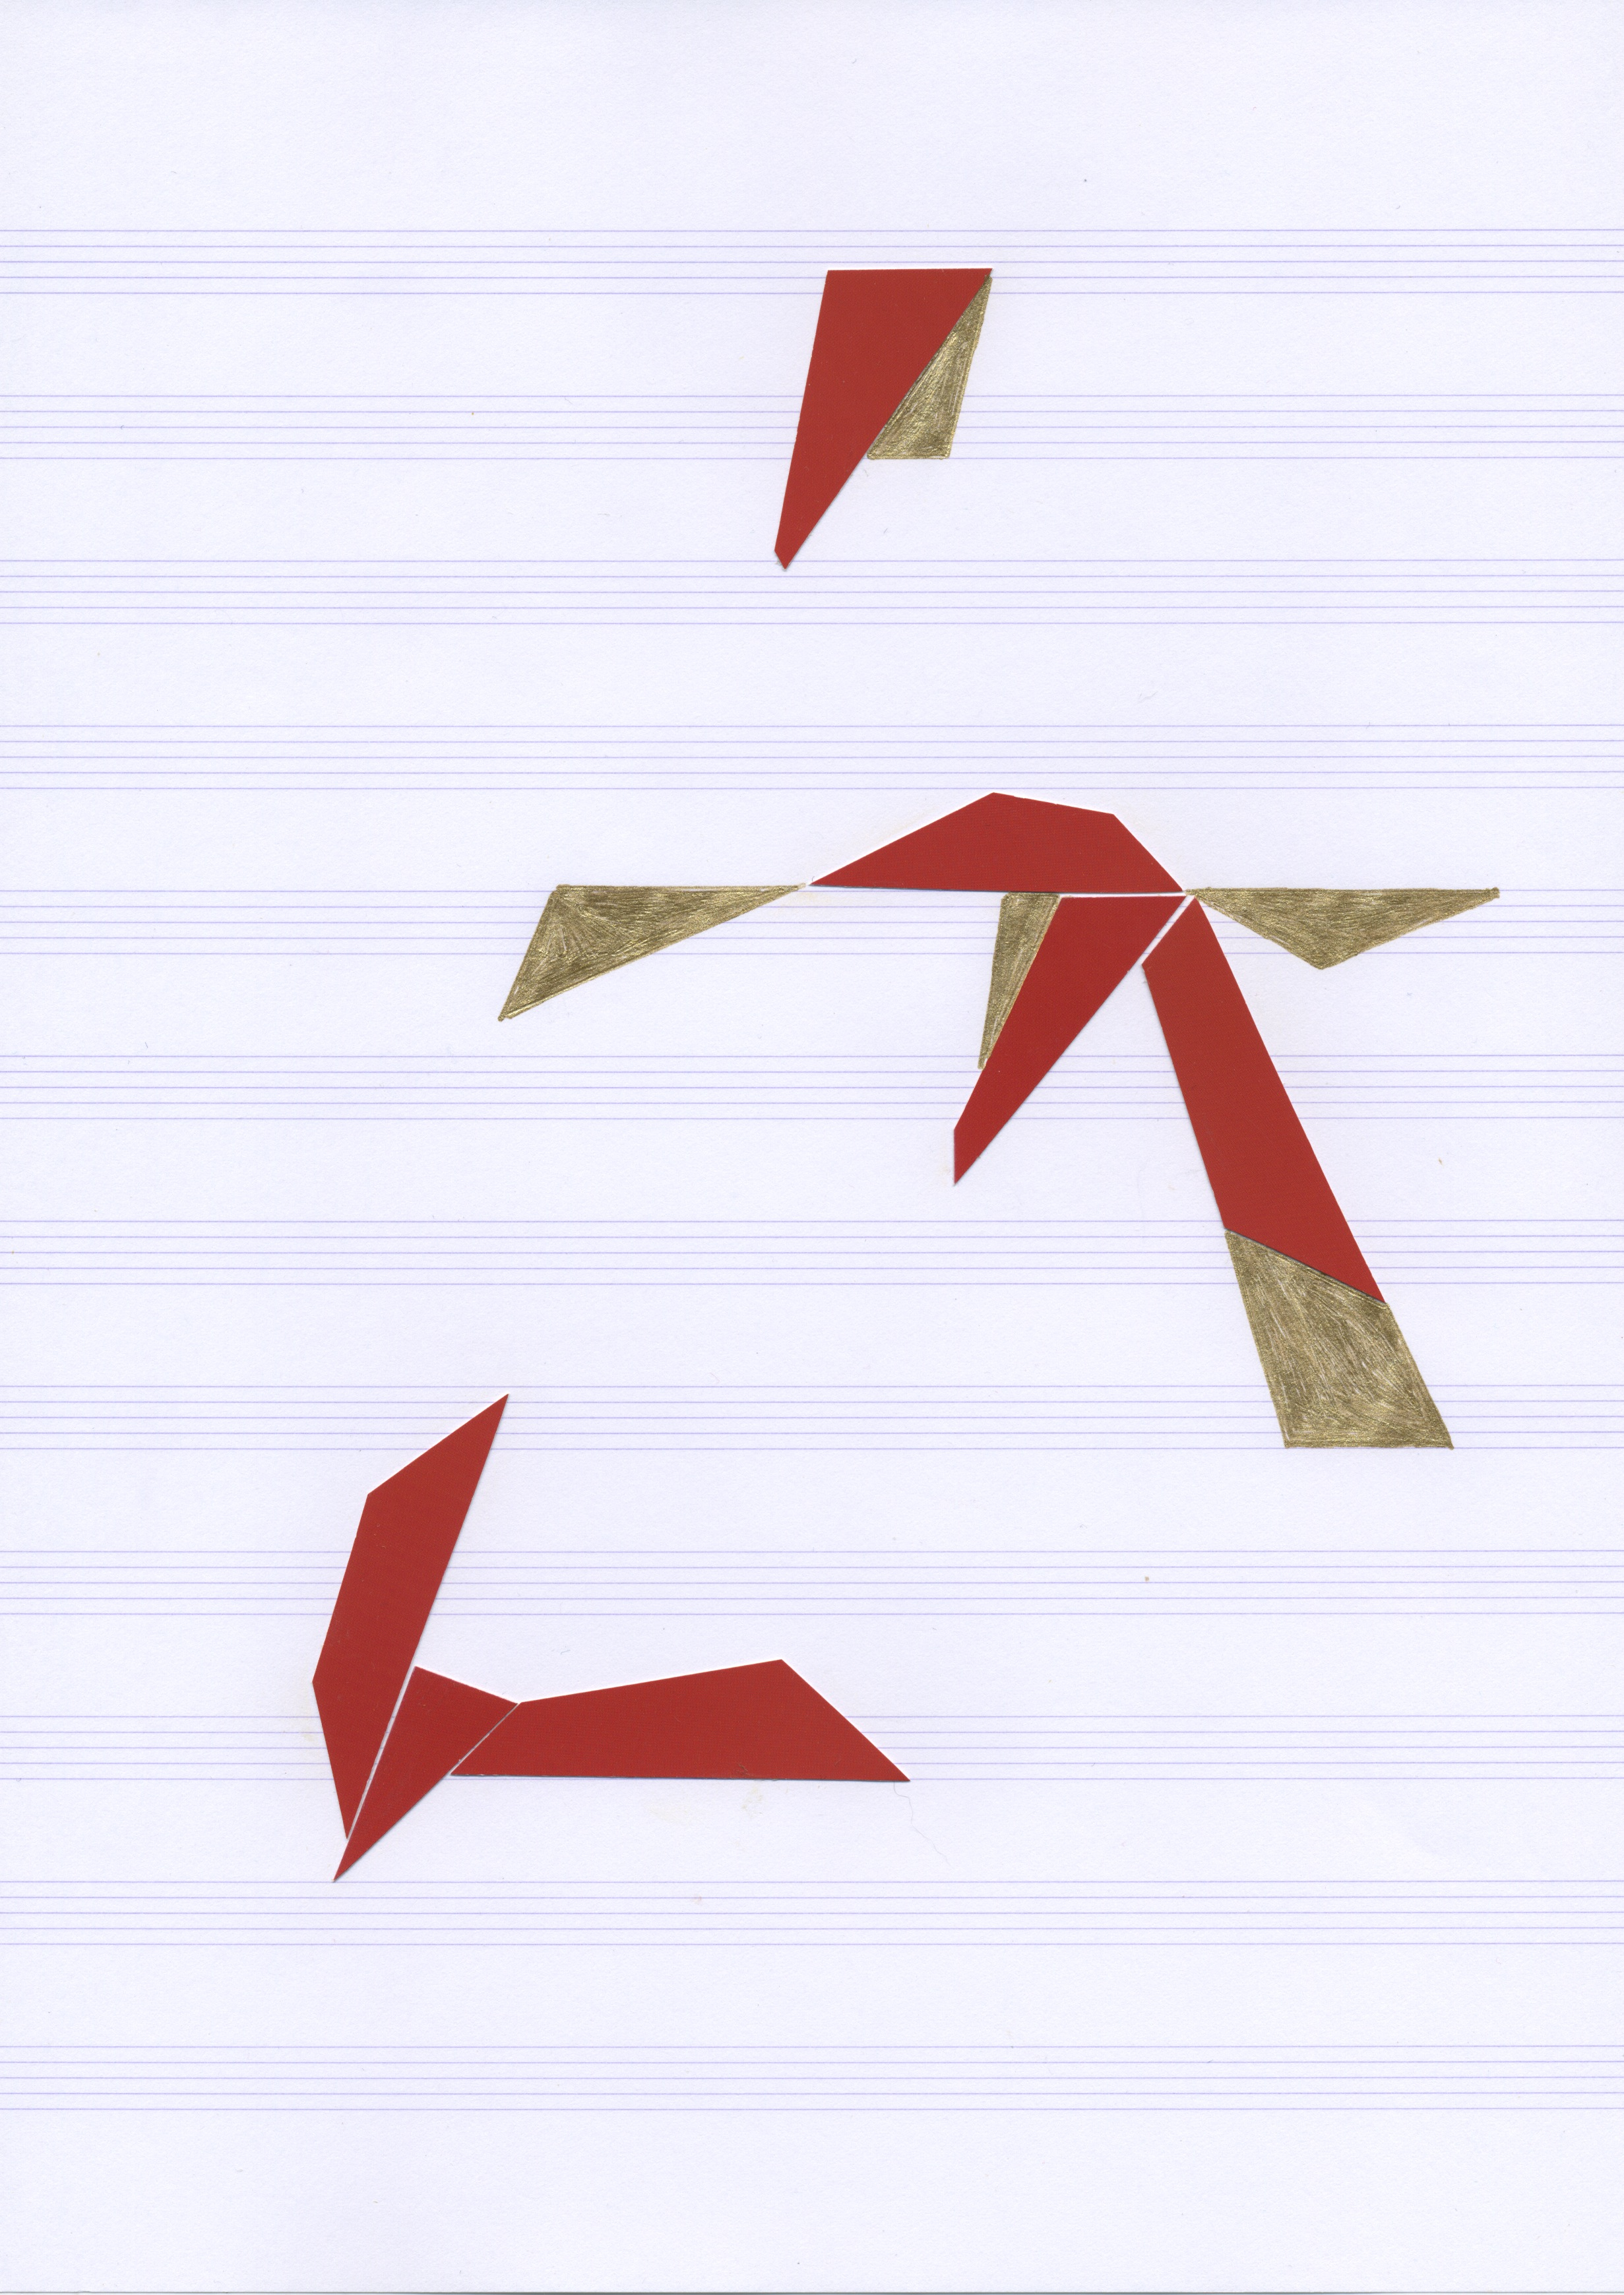 Spatial Notation(s), v. 14  Postcard stock on music paper 11.7 x 8.3 inches, 2011   Private Collection